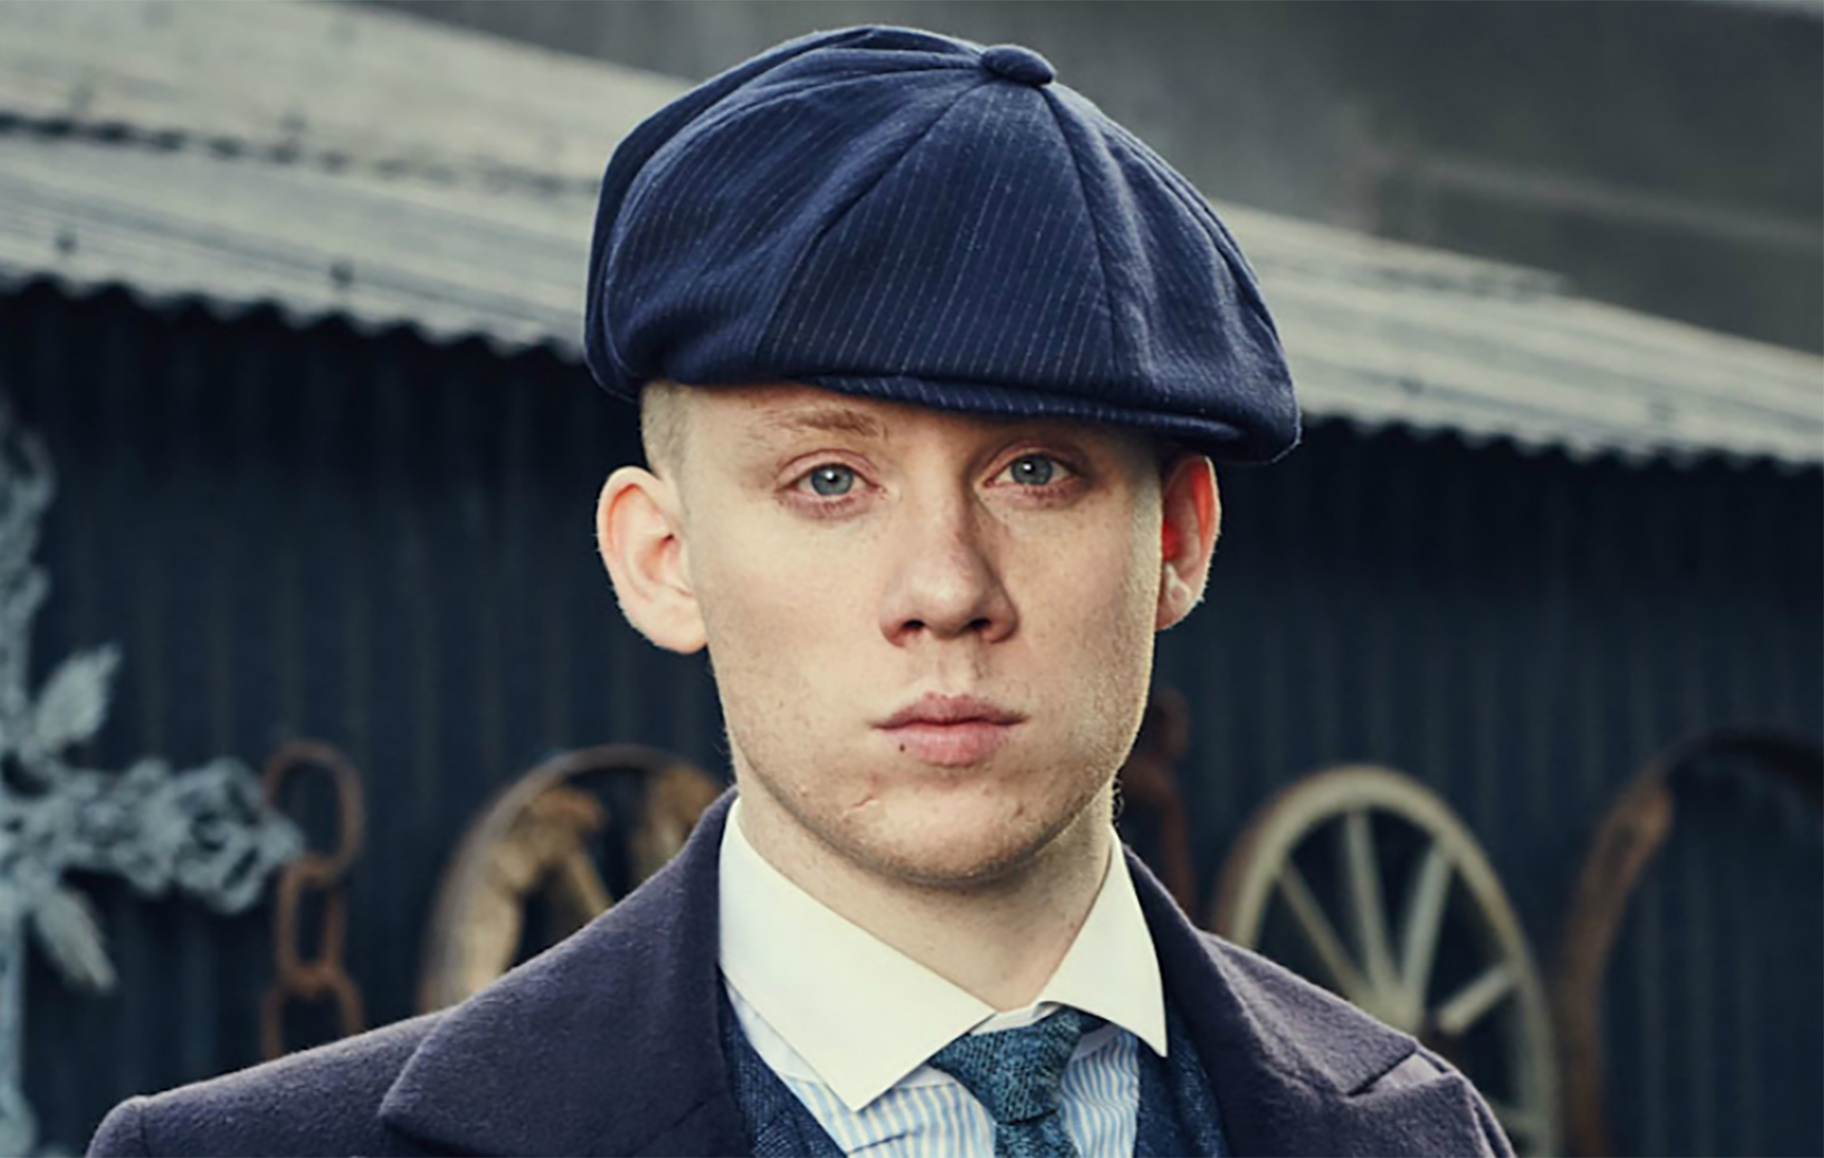 Here Are Some Wild Facts Fans Don't Know About Peaky Blinders